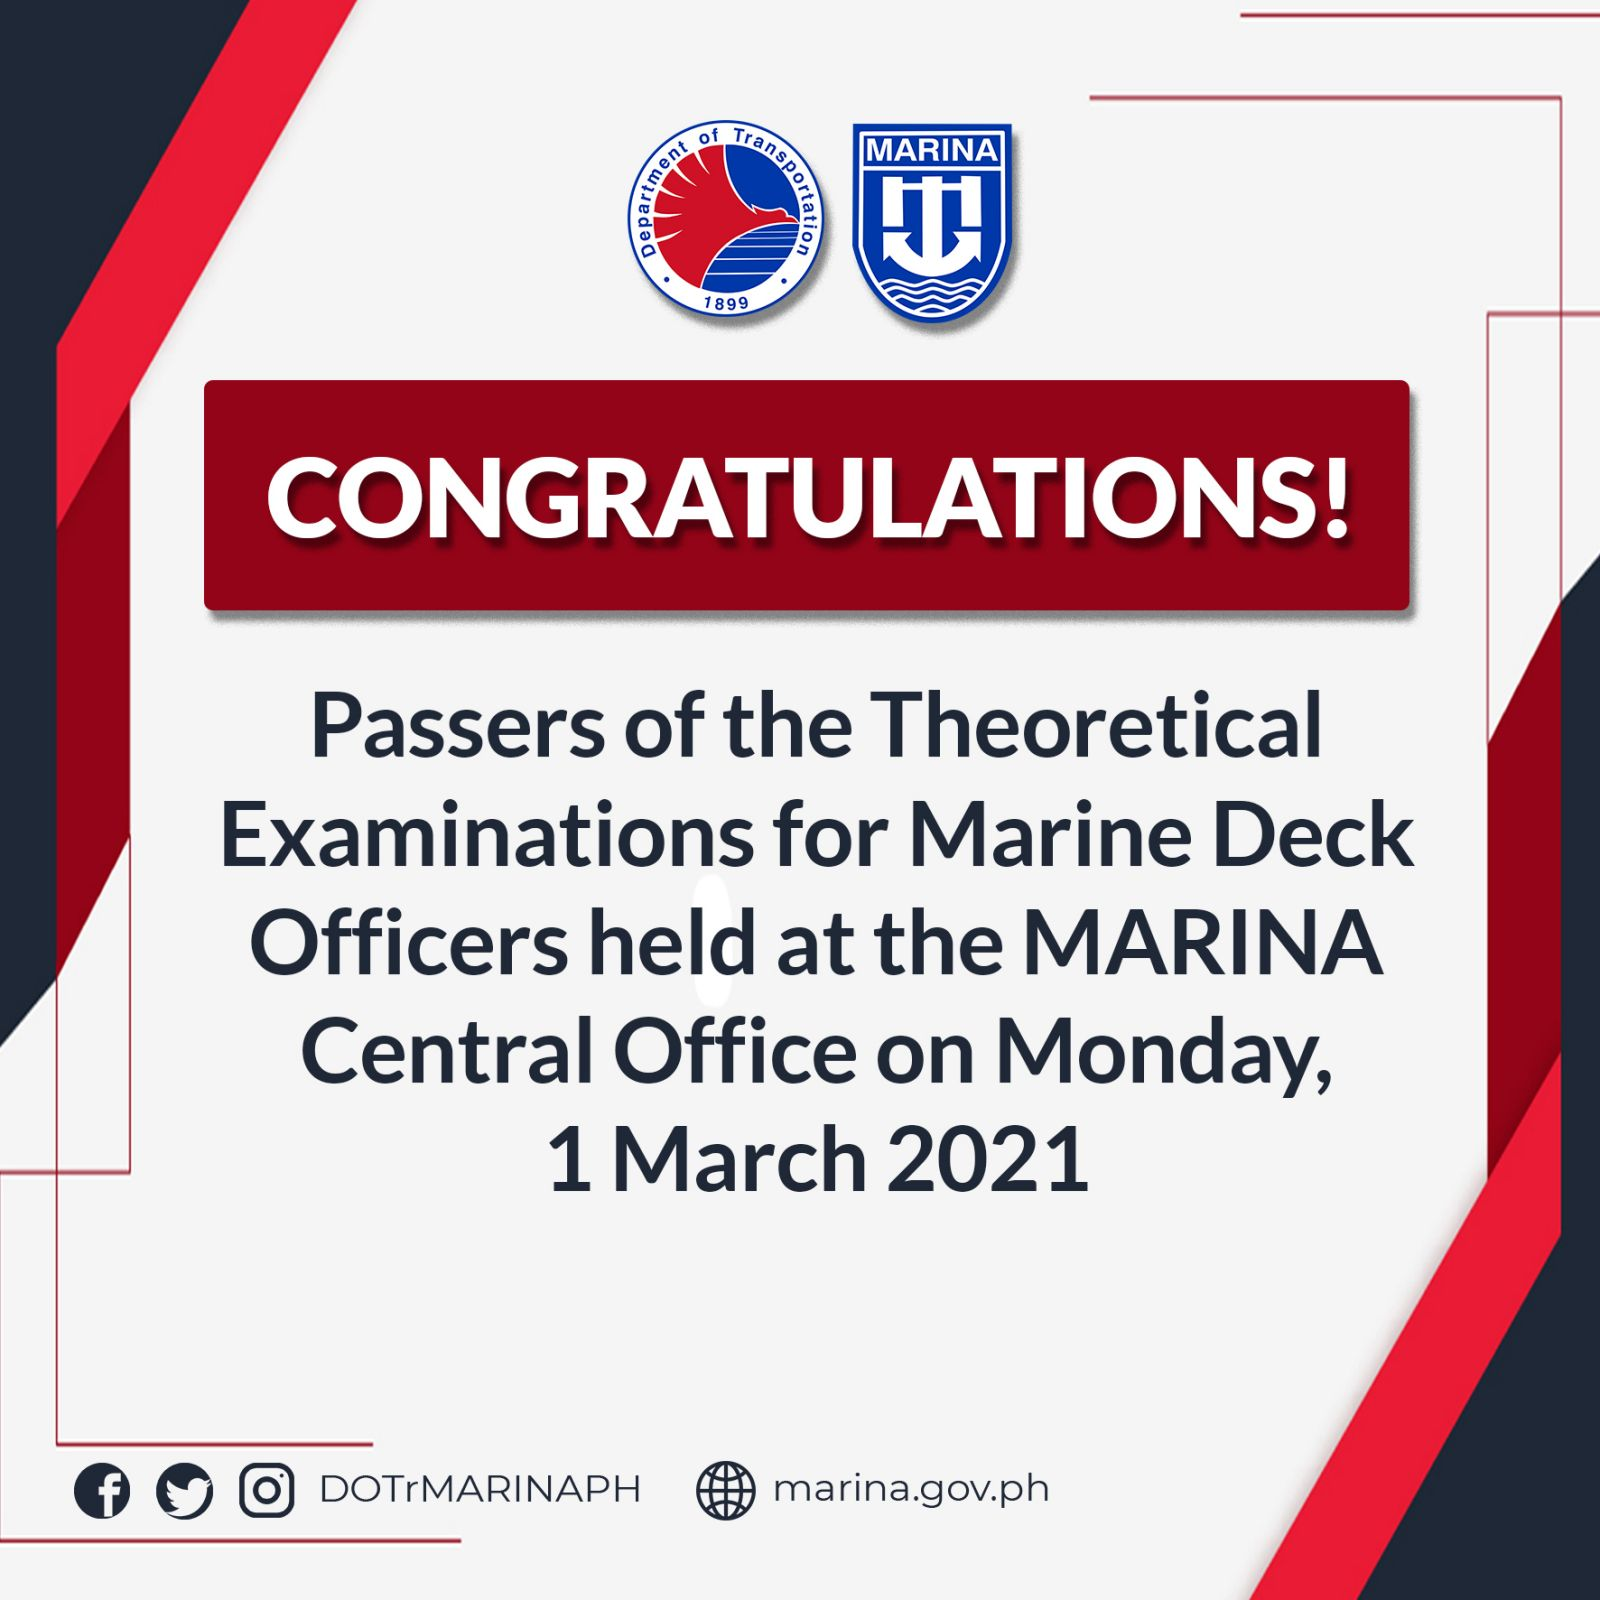 passers of the Theoretical Examinations for Marine Deck Officers conducted at the MARINA Central Office